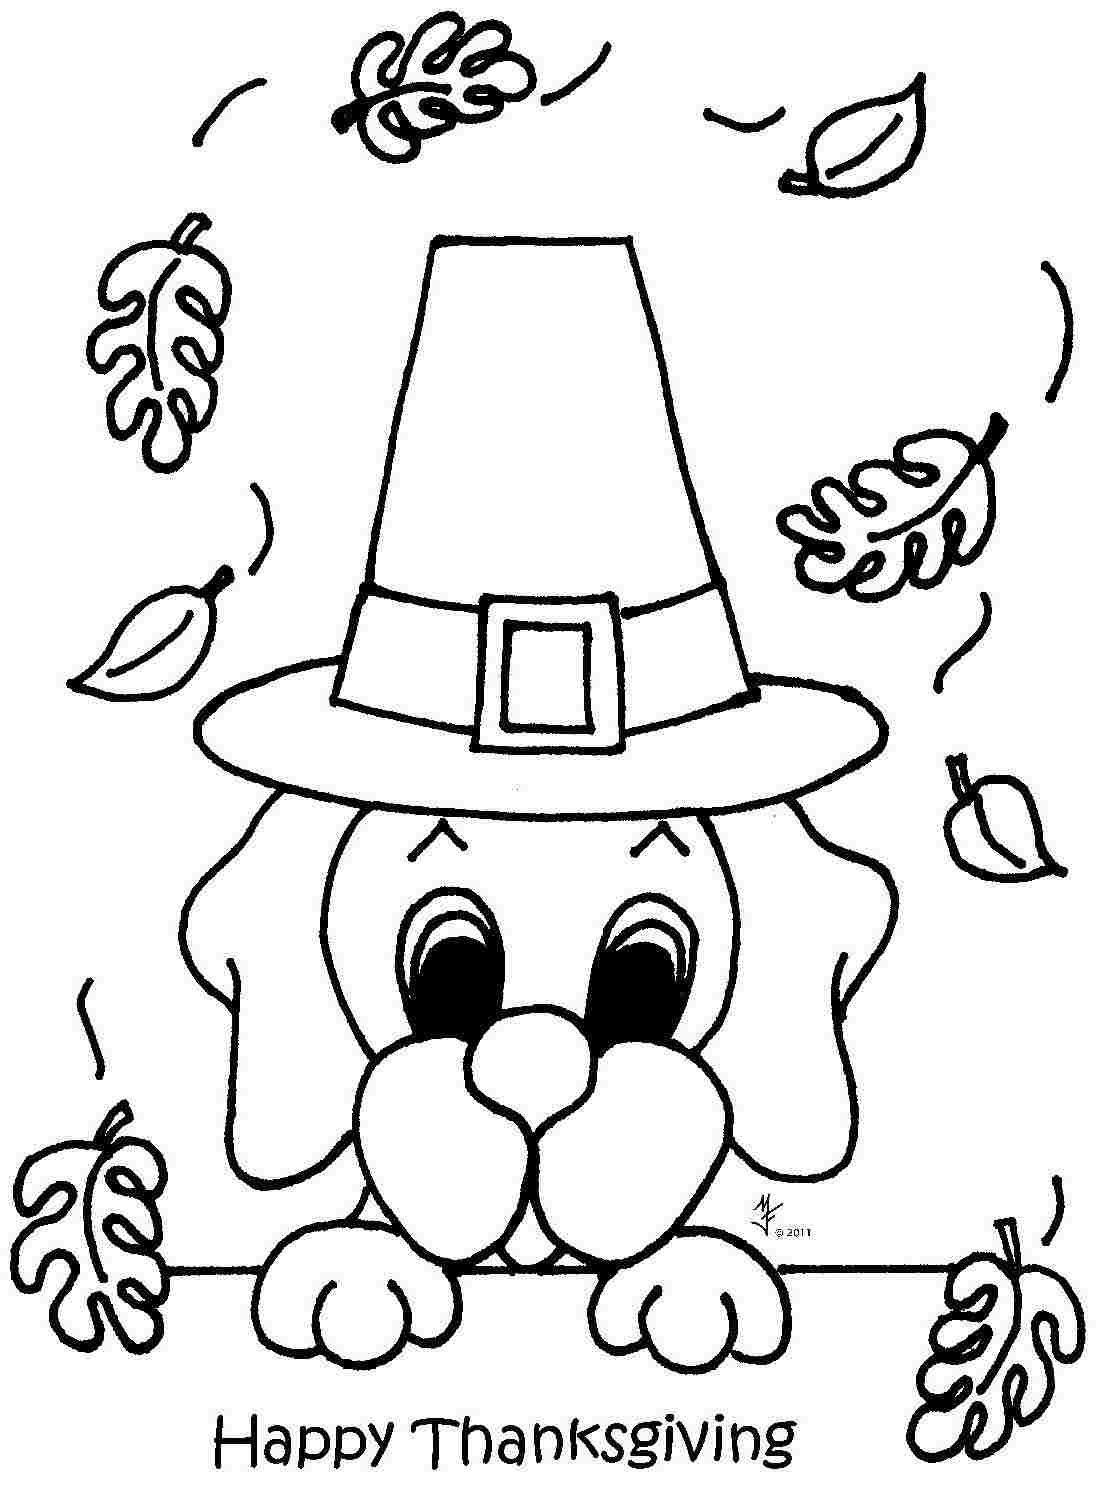 Impressive Design Thanksgiving Coloring Pages Happy Thanksgiving Gallery Of Christmas Coloring Pages Free to Print